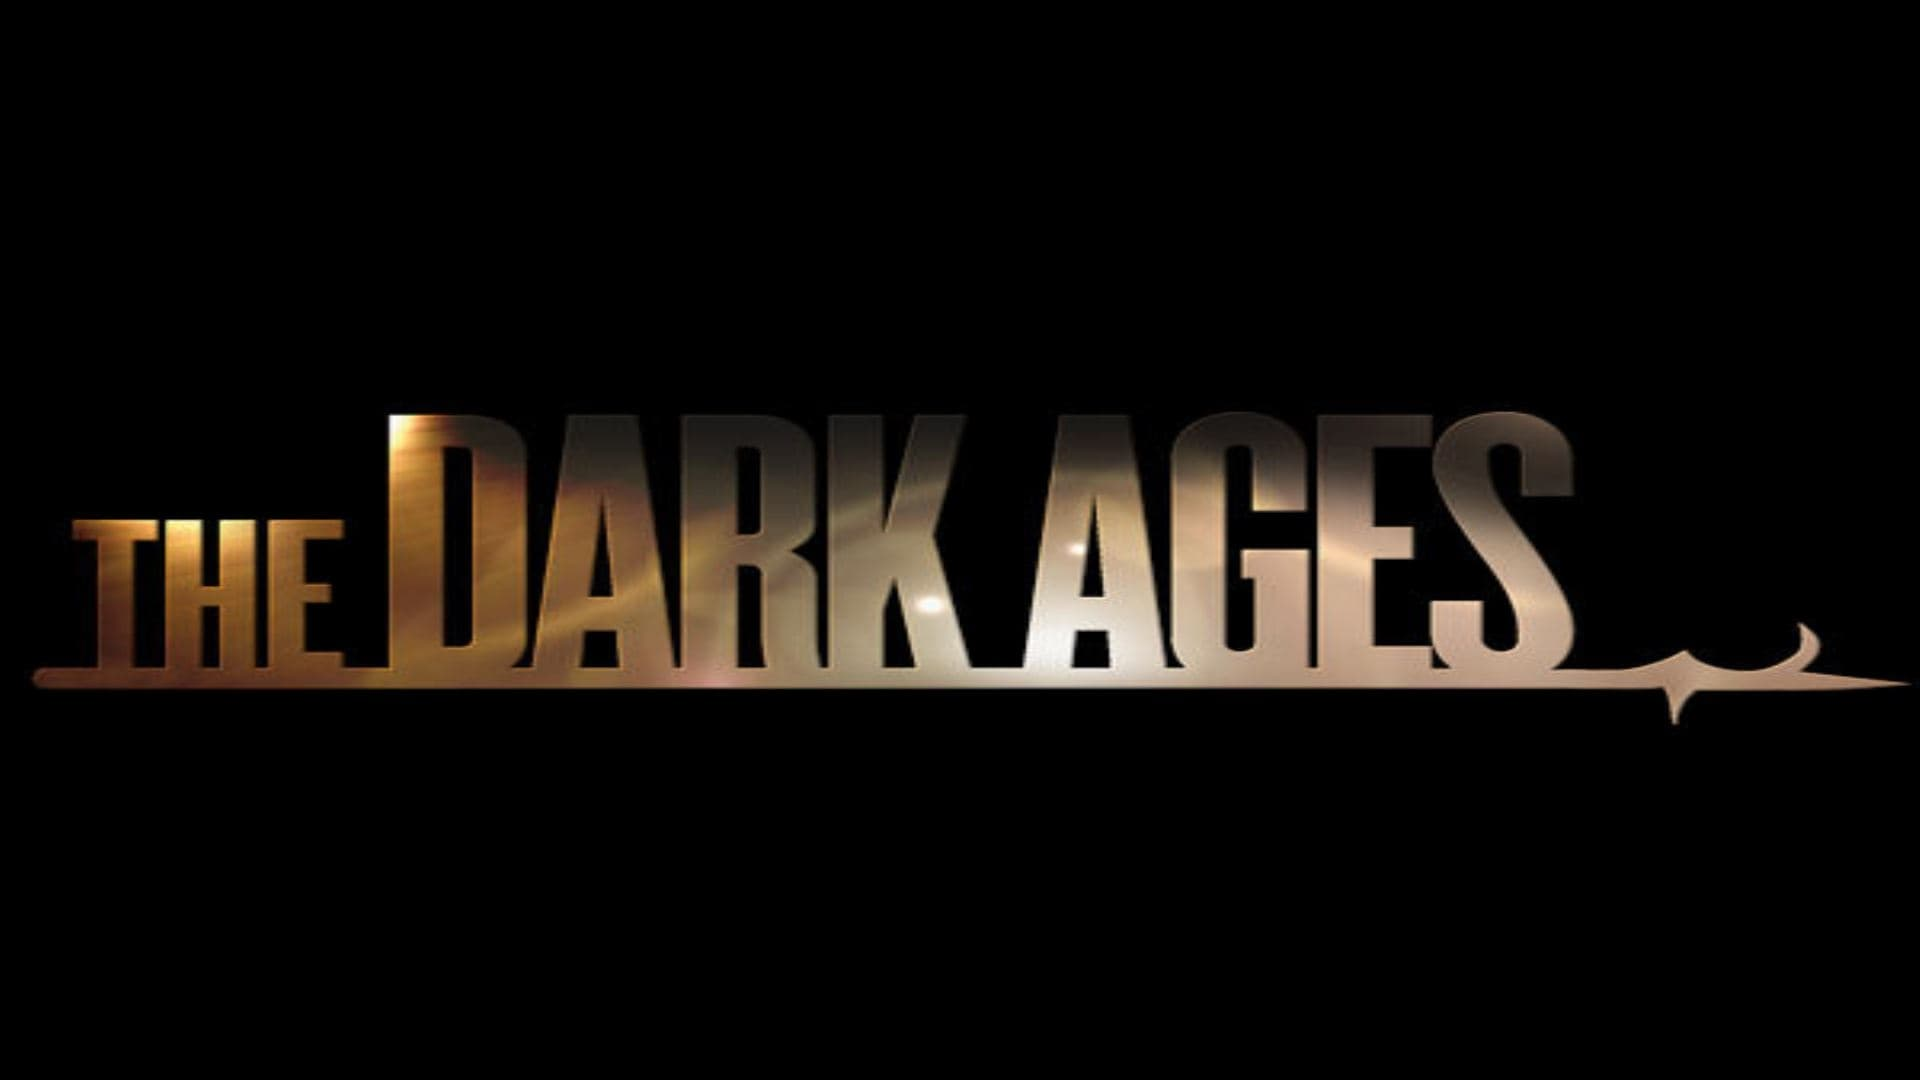 were the dark ages really so dark Many people erroneously believe that the dark ages were caused by the catholic church and its hatred of science/love of superstition, and its dominant control of the mind of man during what has been called the medieval or dark ages.